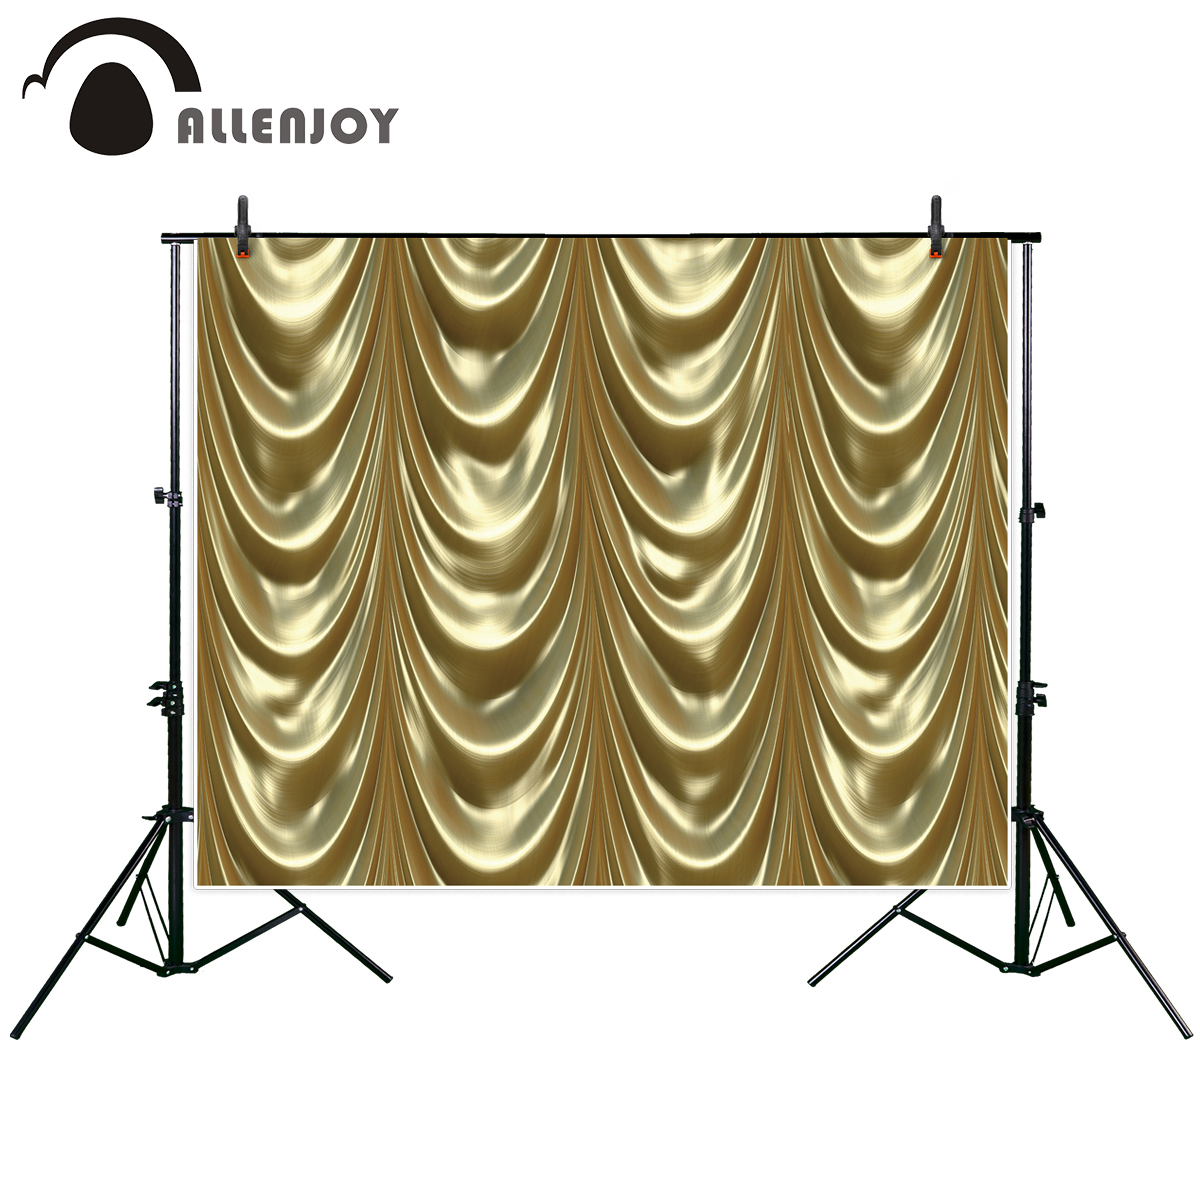 Draping Curtains Us 9 31 33 Off Allenjoy Photography Backdrop Luxurious Golden Curtains Draping Down Like In A Theatre New Background Photocall Photo Printed In